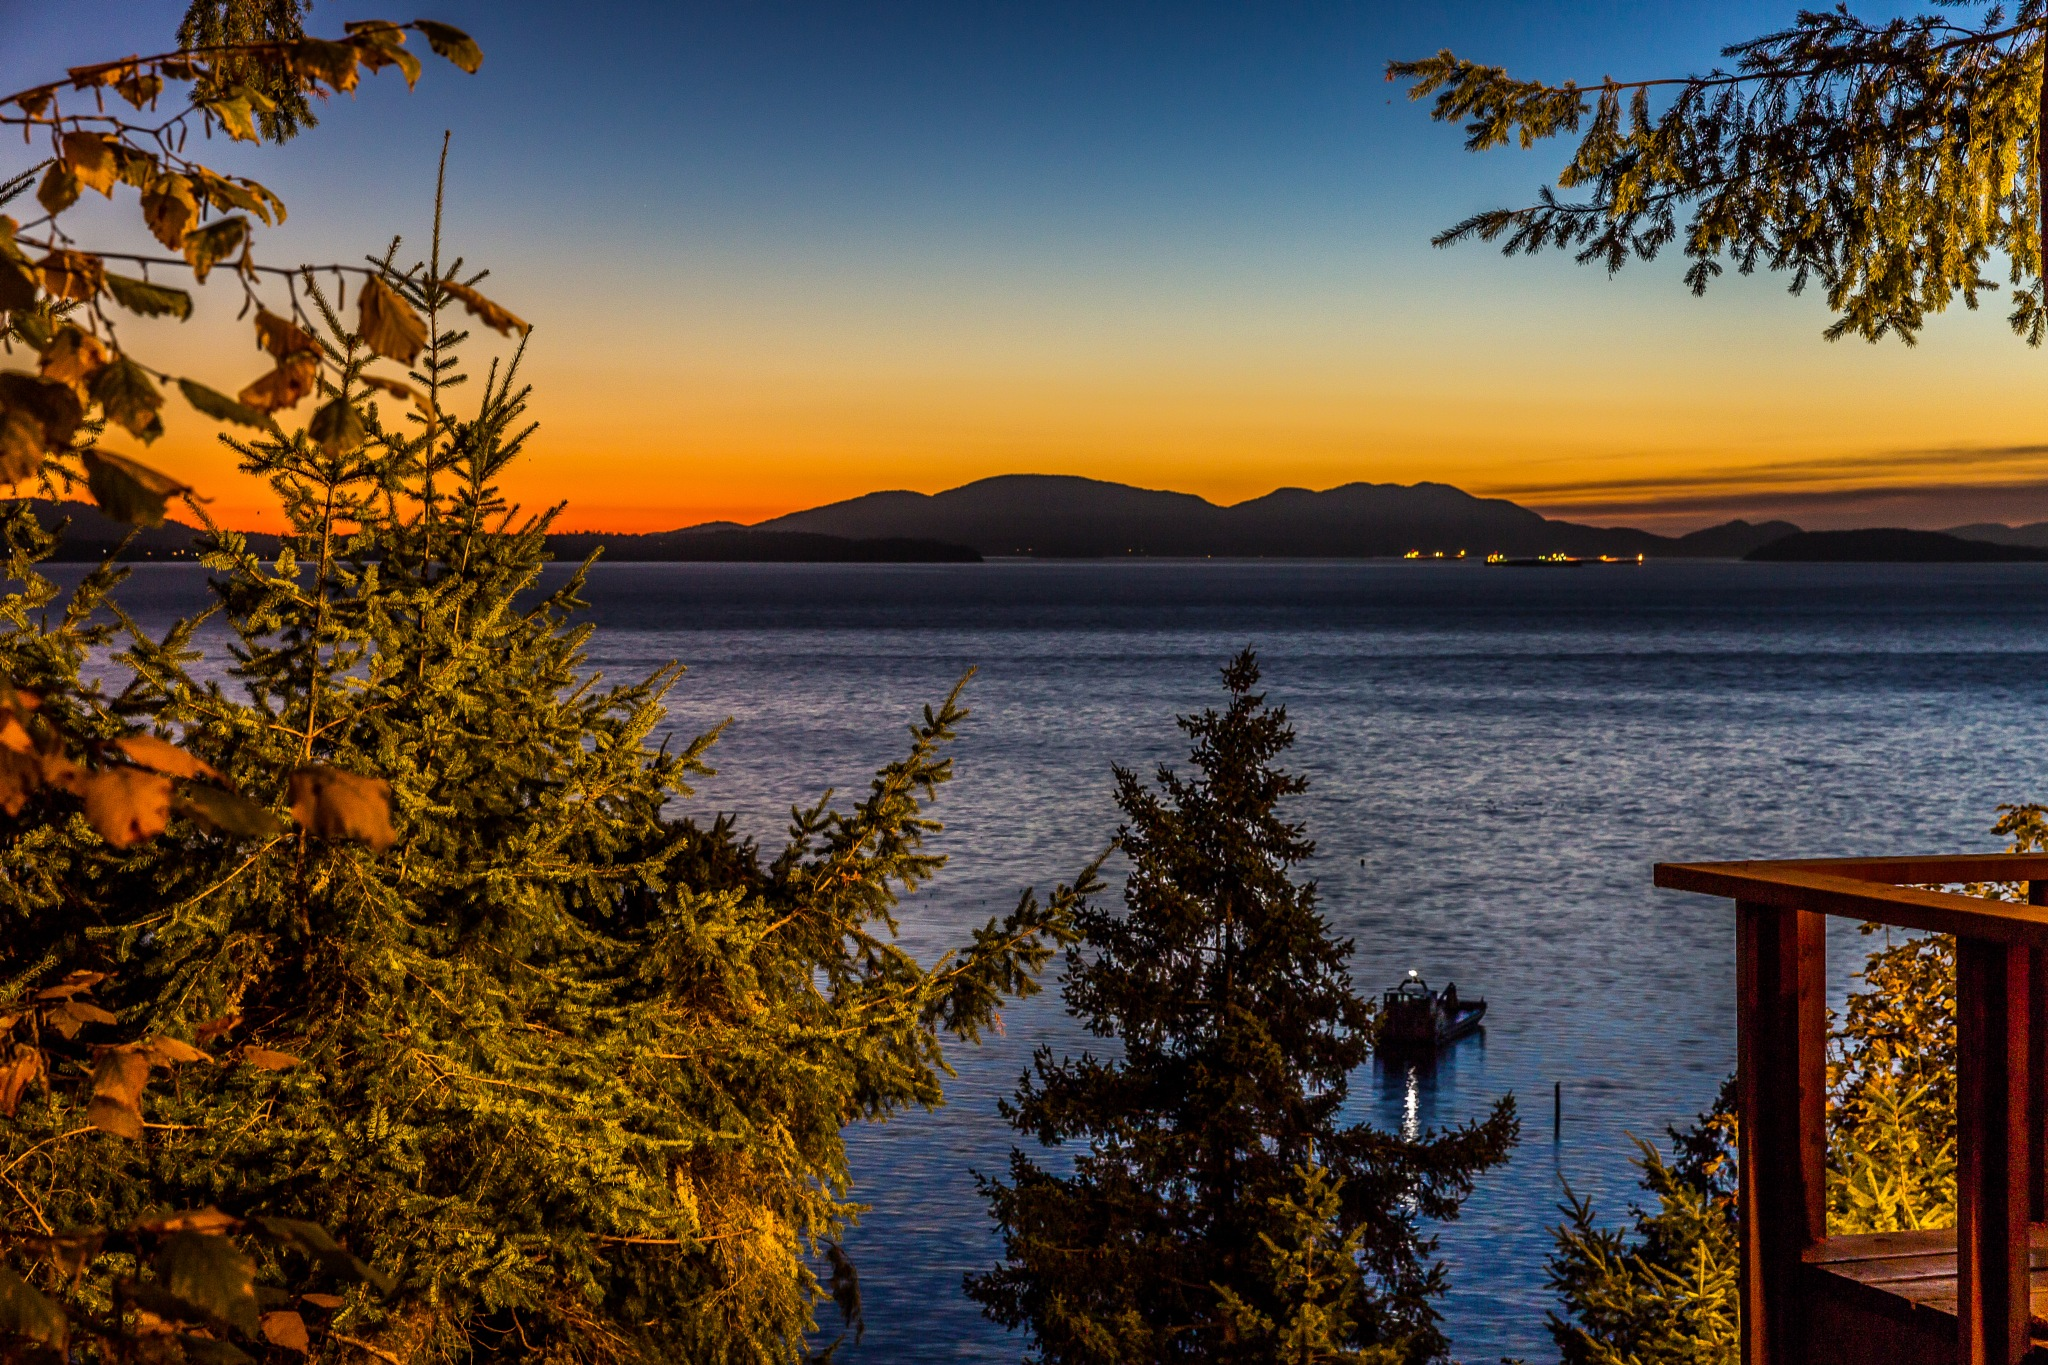 Chuckanut Sunset by Mark Joseph